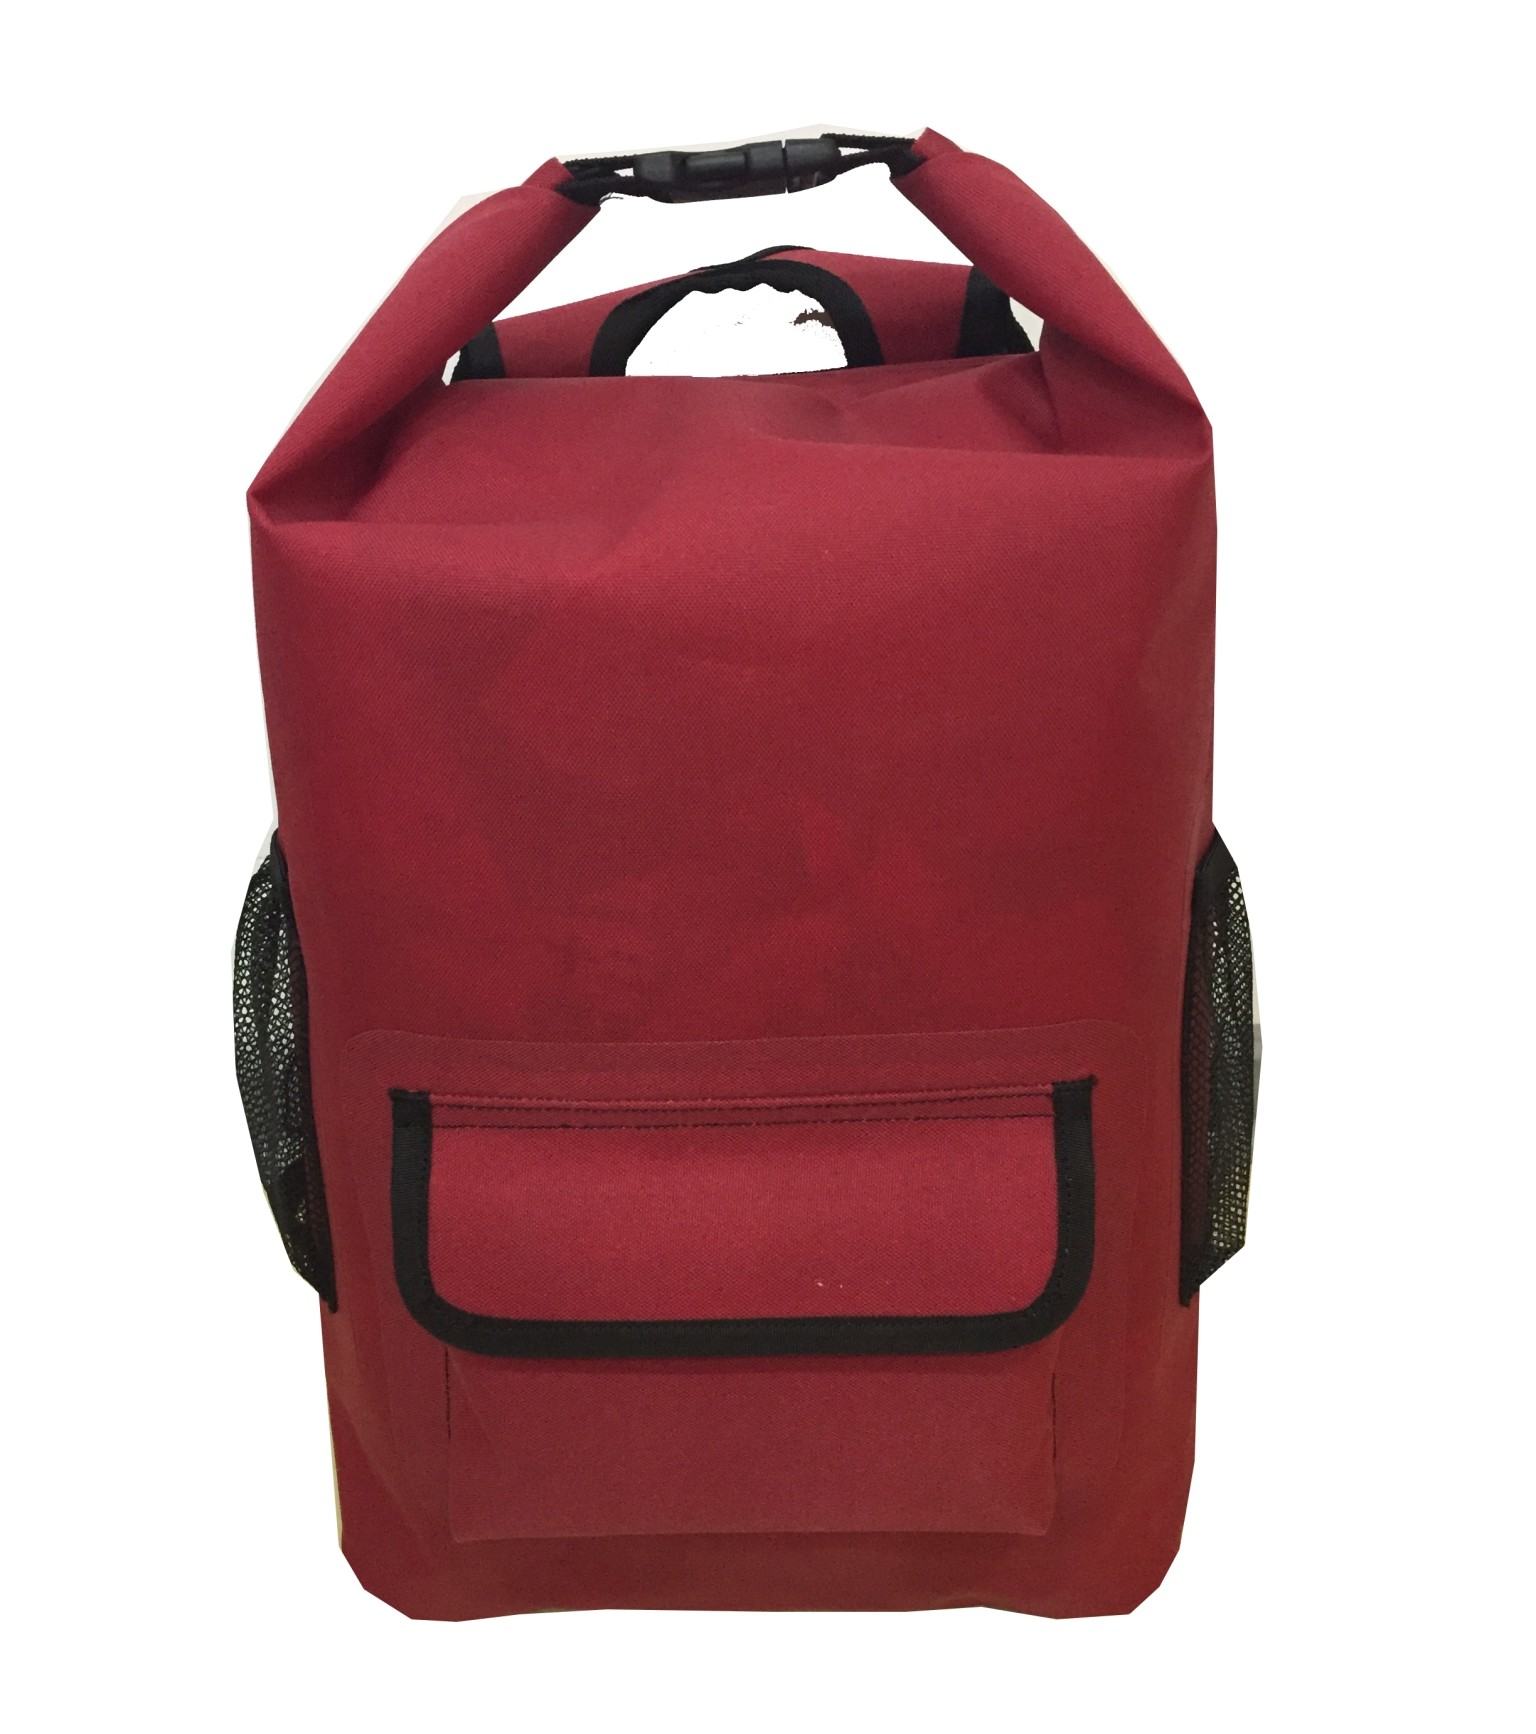 Rafting Dry Bags Manufacturers, Rafting Dry Bags Factory, Supply Rafting Dry Bags